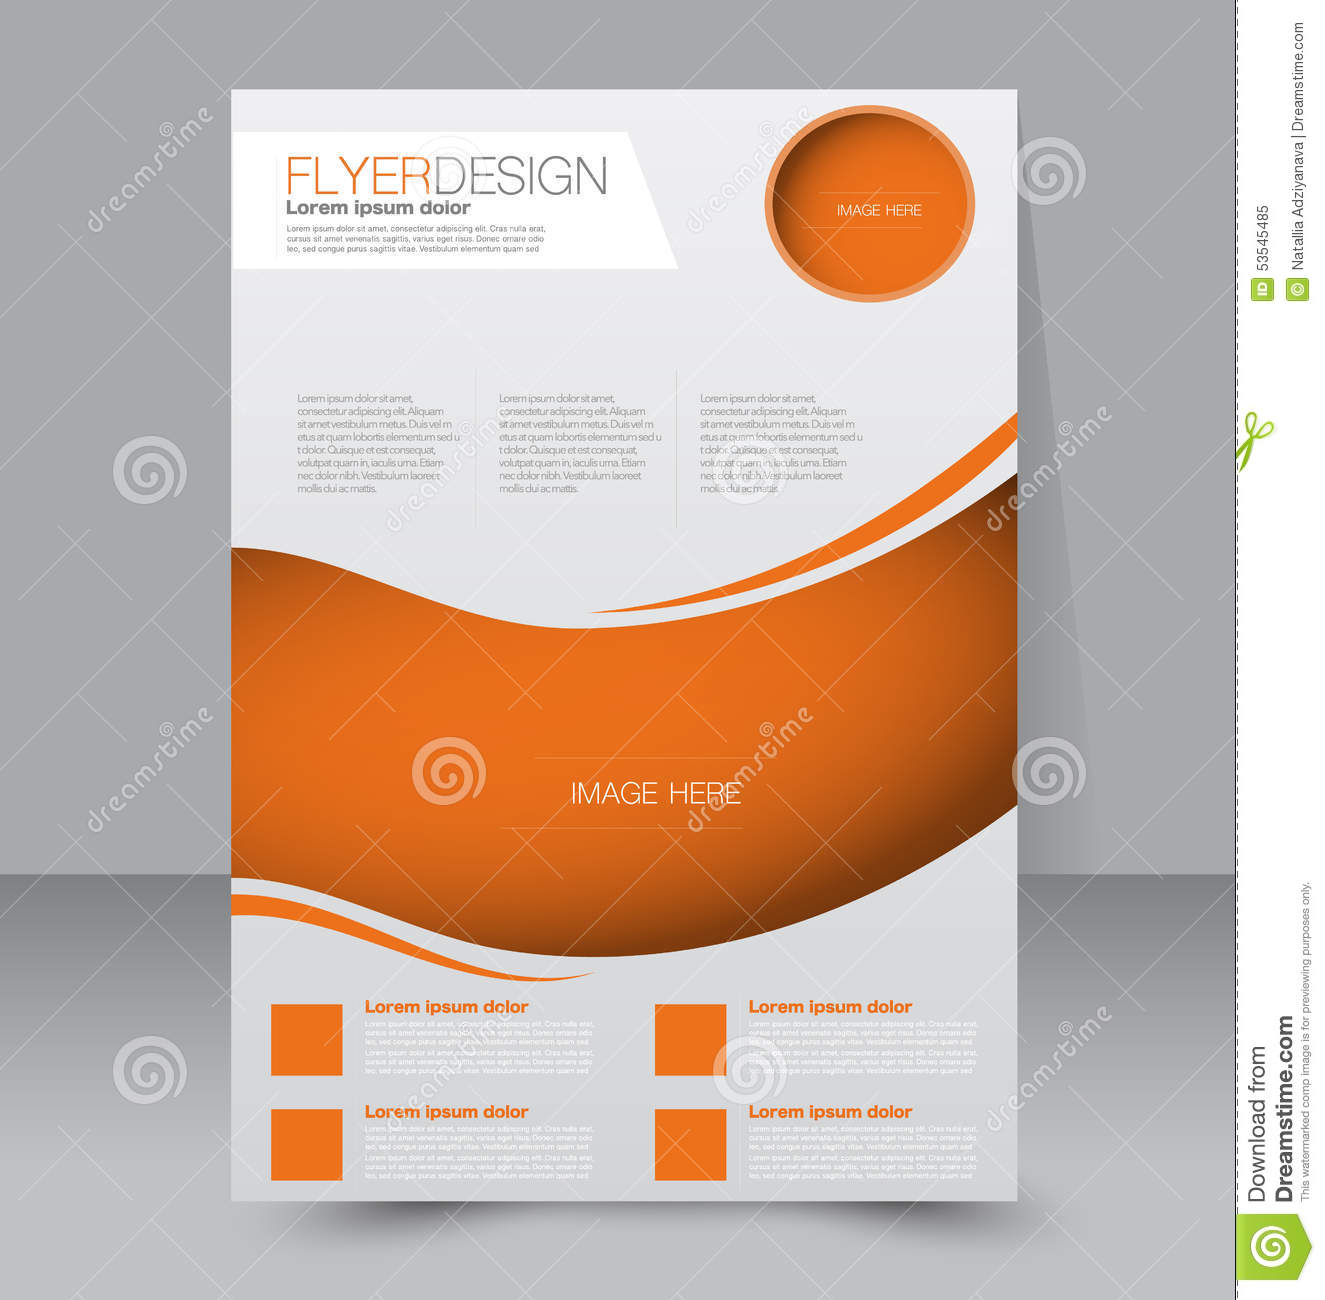 template brochure - flyer template business brochure editable a4 poster